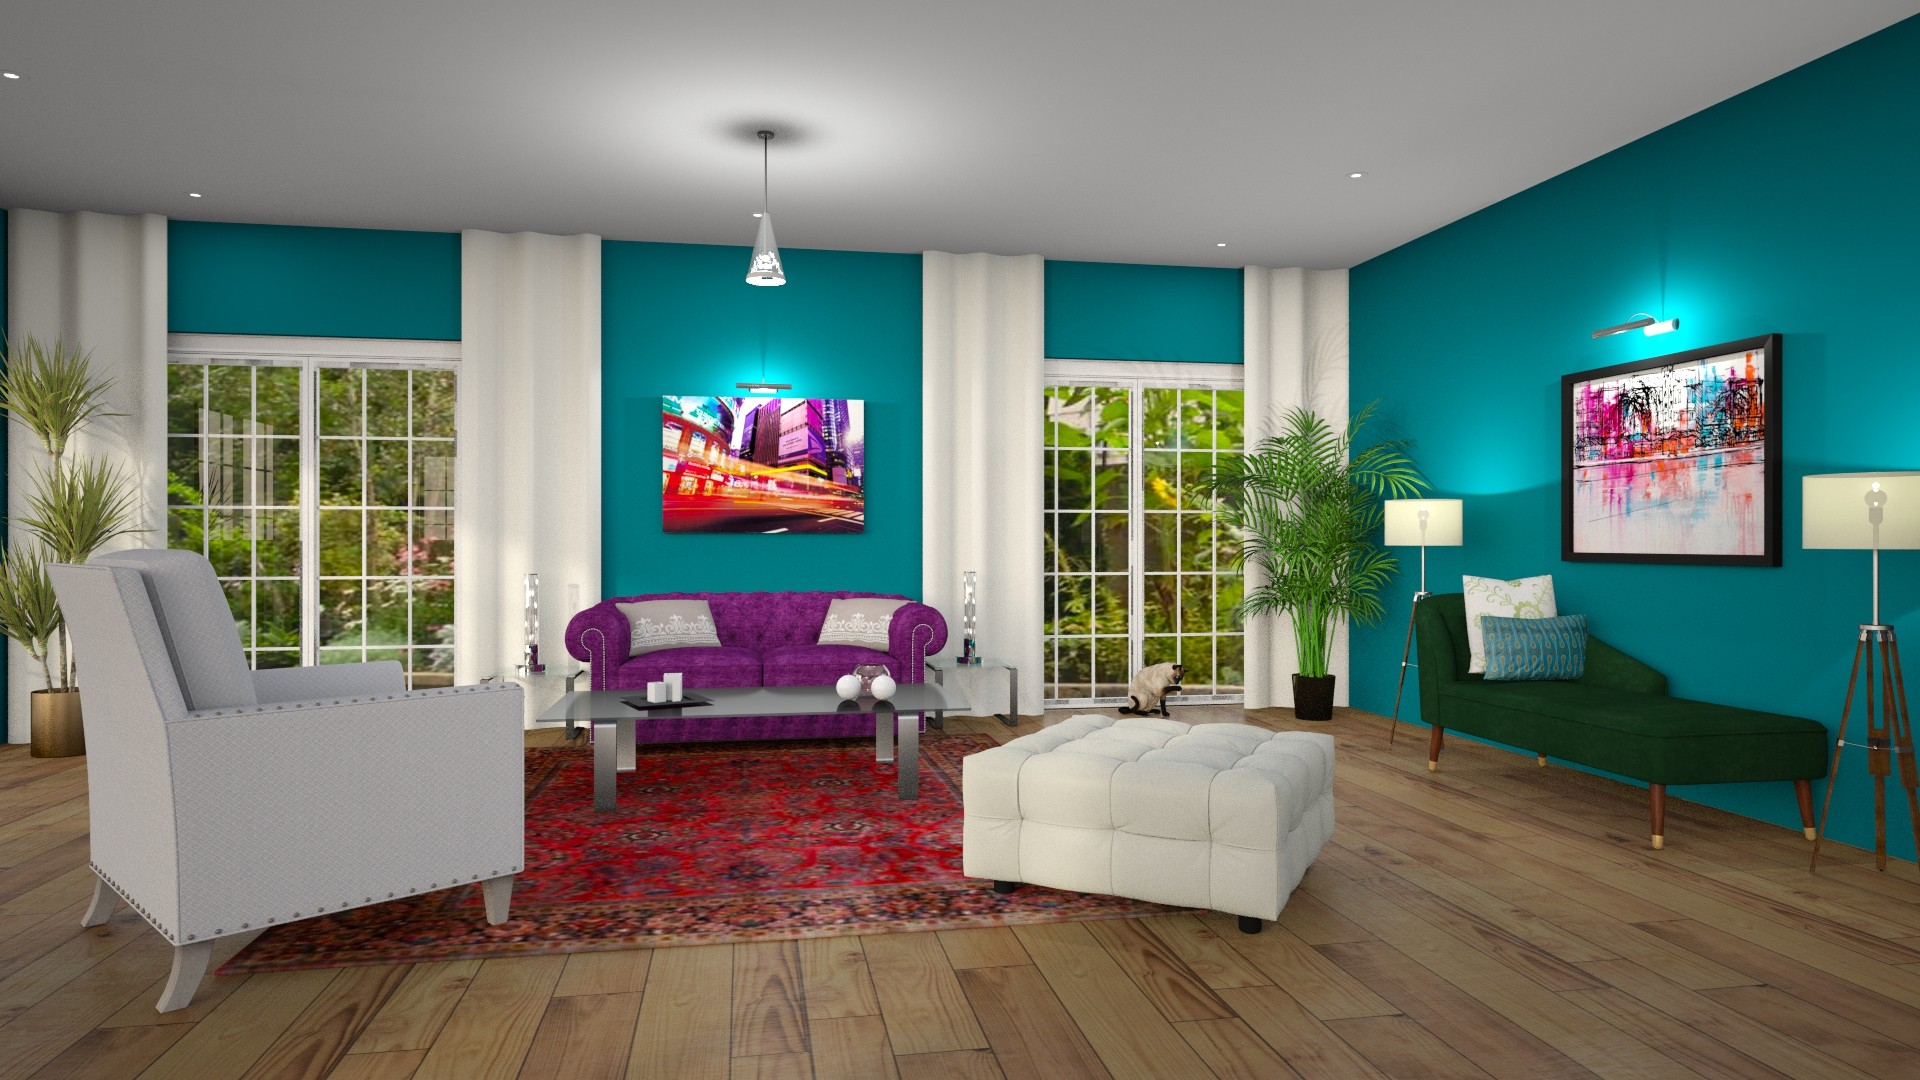 Modern Global Edesign of a Living room using Benjamin Moore's Jade Garden.